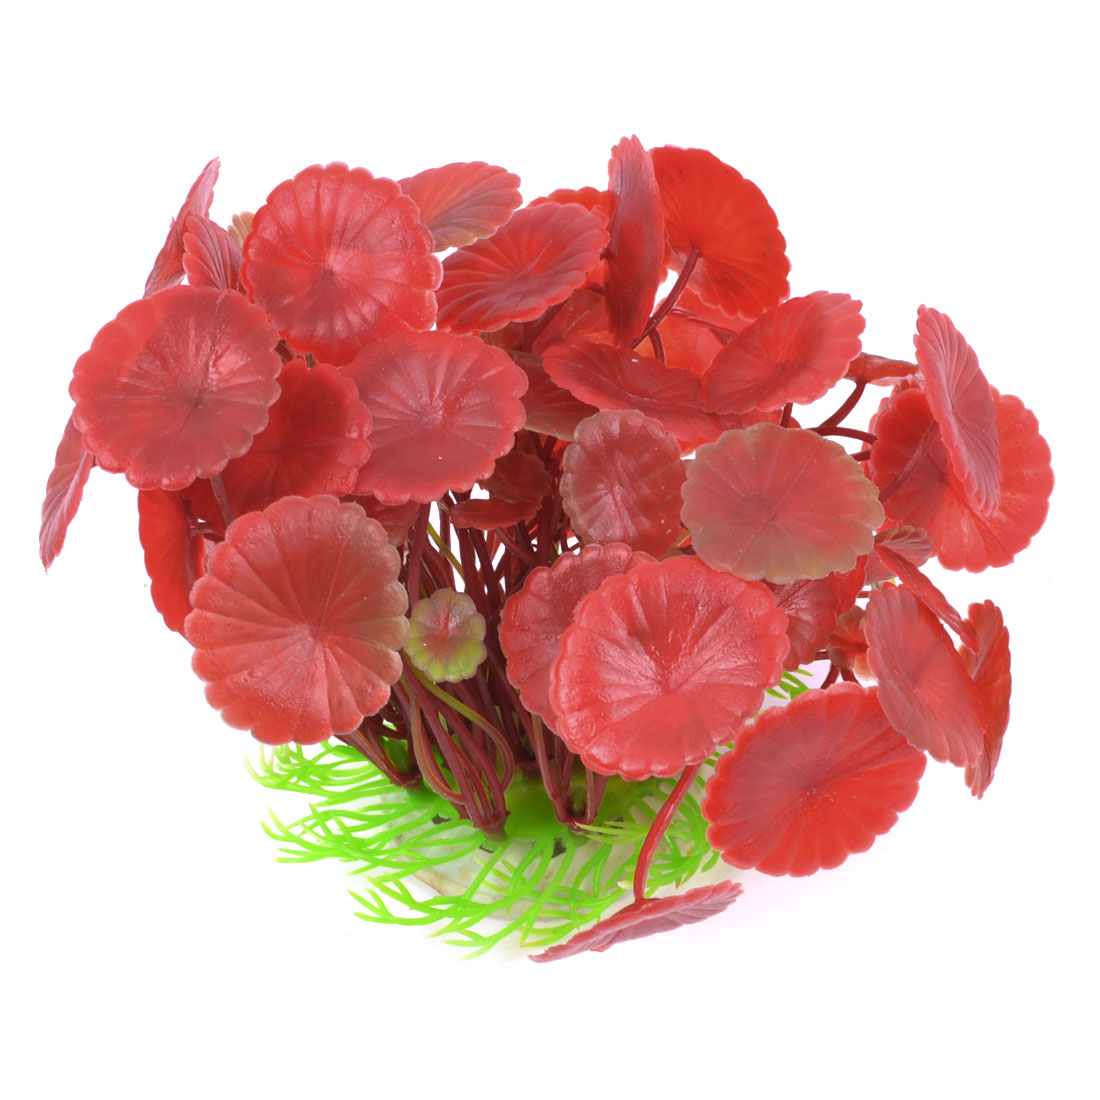 Fish Tank Red Manmade Simulation Aquatic Plant Decor 6.3""